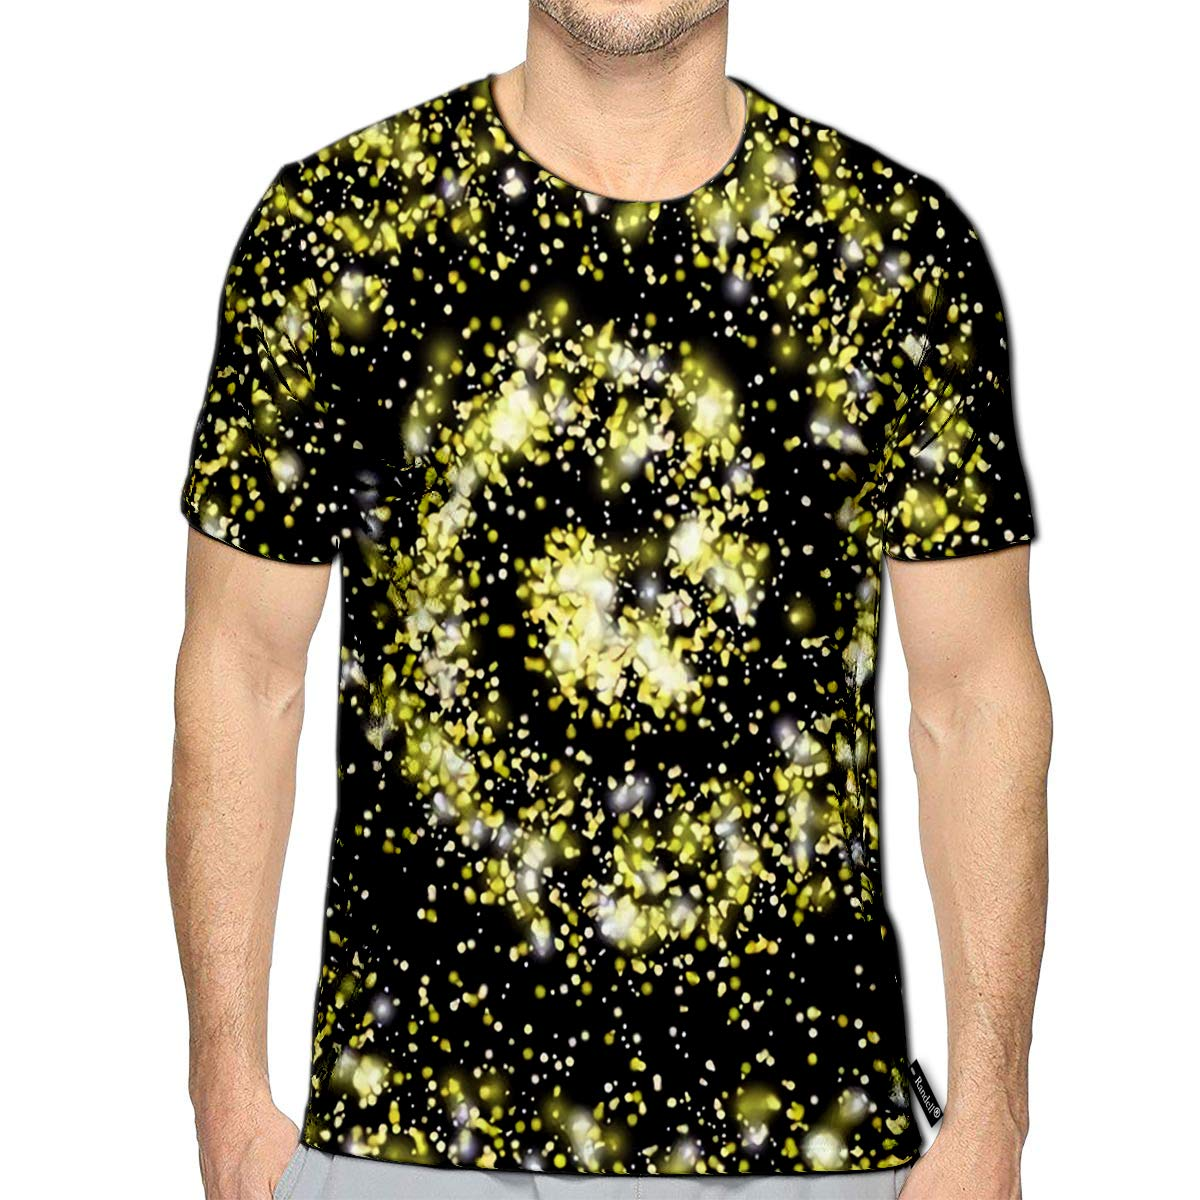 3D Printed T-Shirts Based On Traditional Asian Elements Paisley Short Sleeve Top